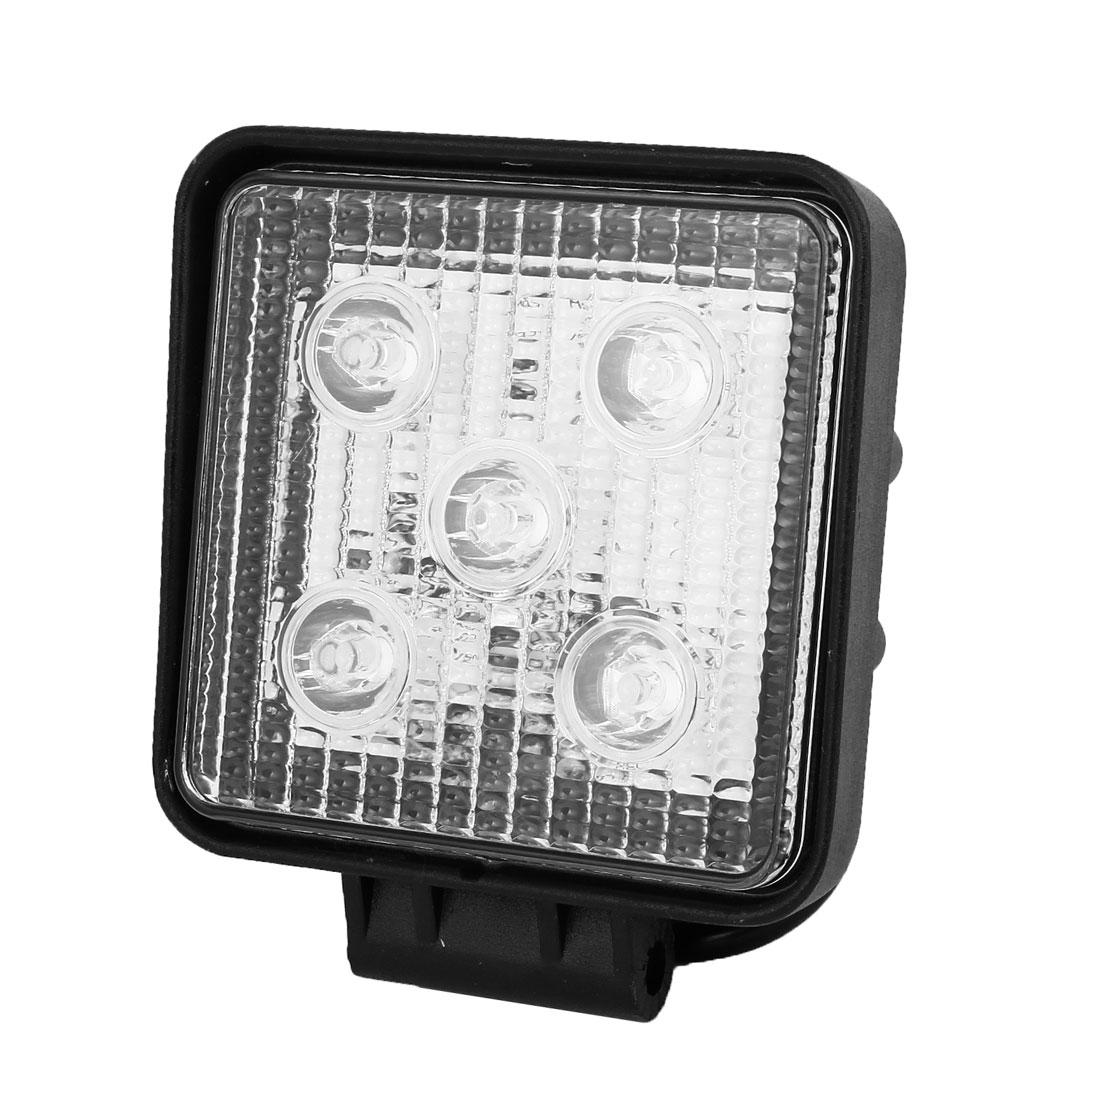 Square 15W White 5 LED Flood Work Light Head Lamp Offroad SUV ATV Internal